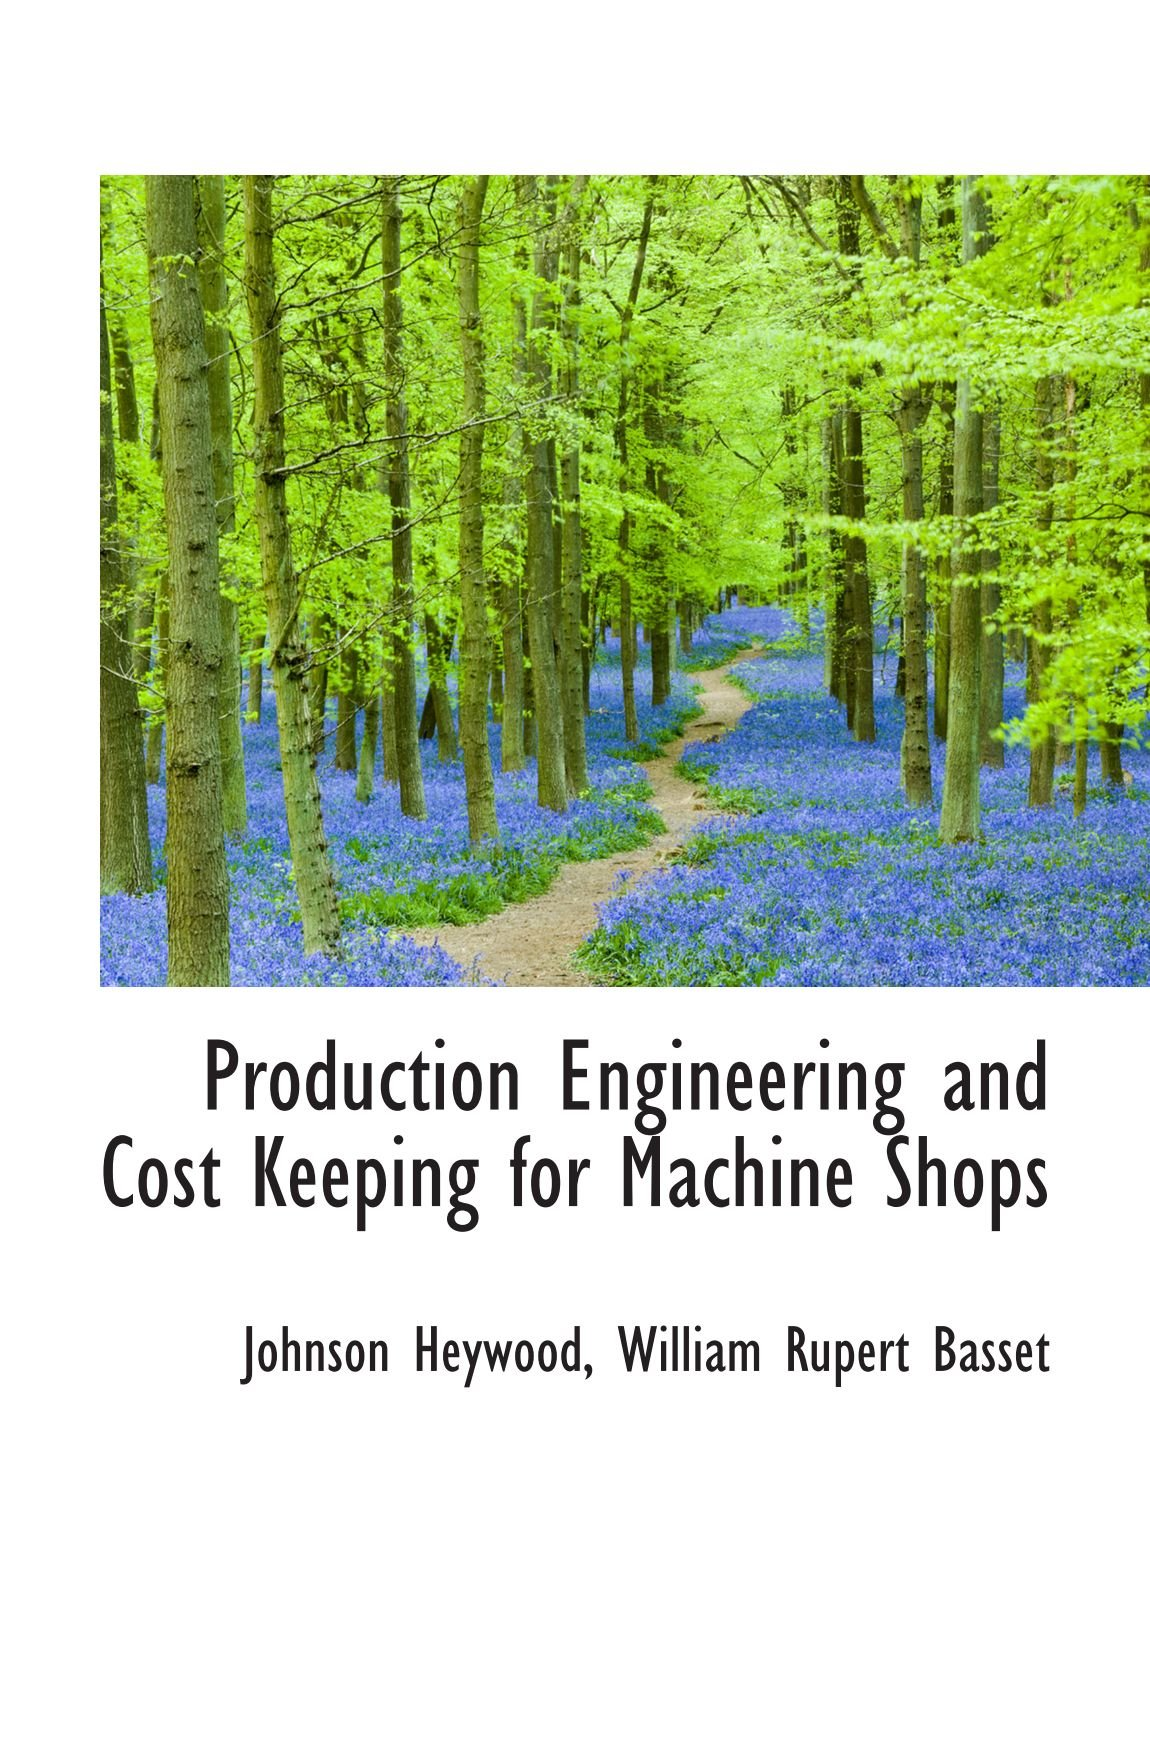 Production Engineering and Cost Keeping for Machine Shops PDF